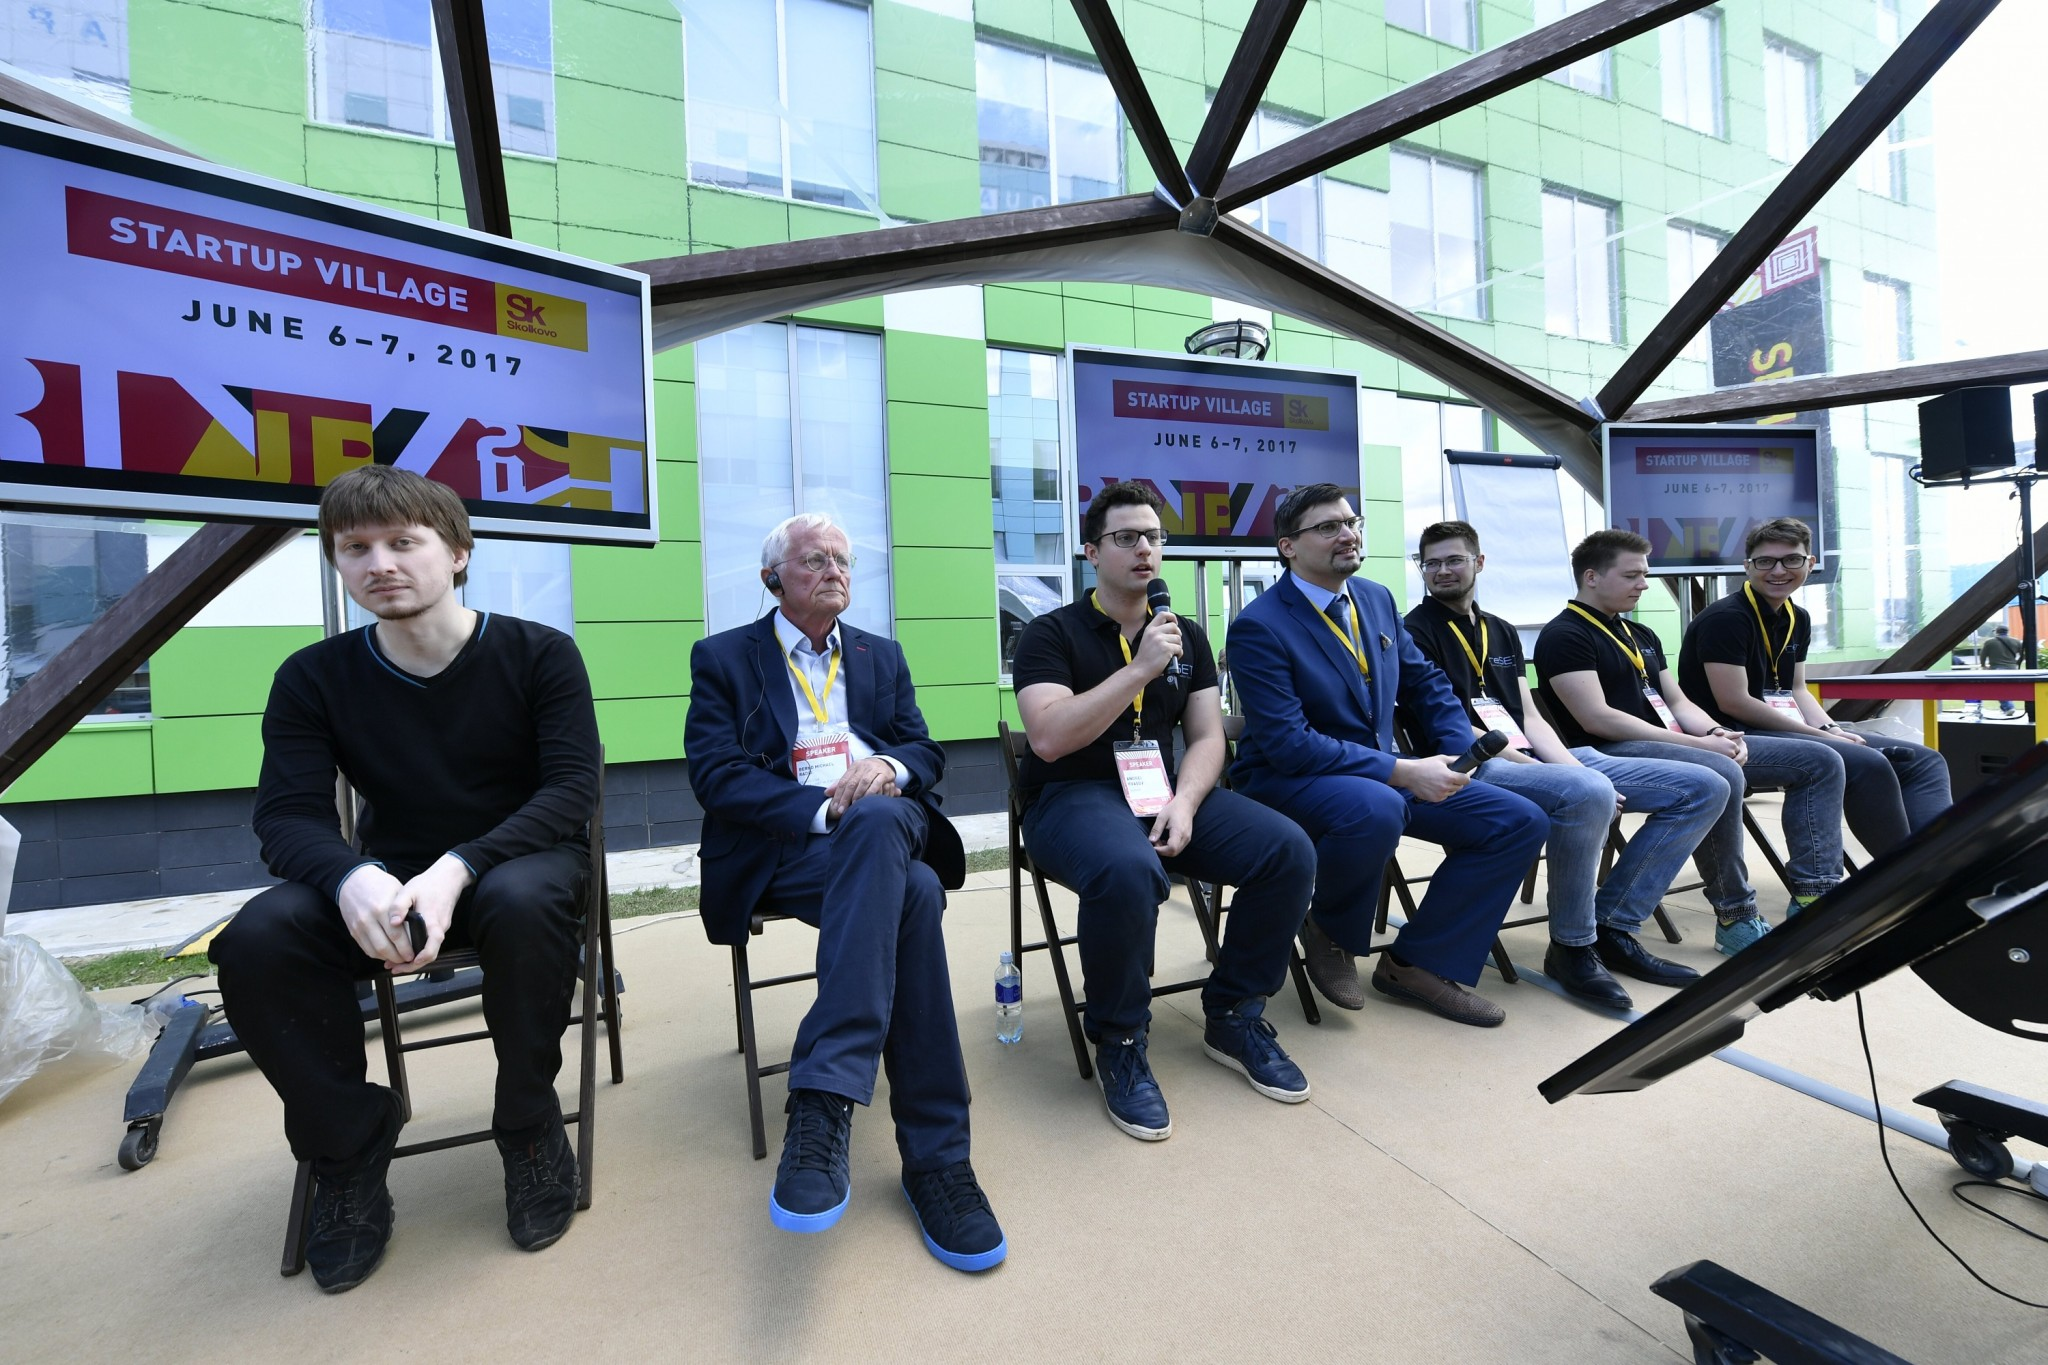 Members of Skoltech's award-winning robotics team reSET and renowned Artificial Intelligence expert Professor Bernd Radig of the Technical University of Munich (second from left) participate in a robotics panel at the Startup Village.